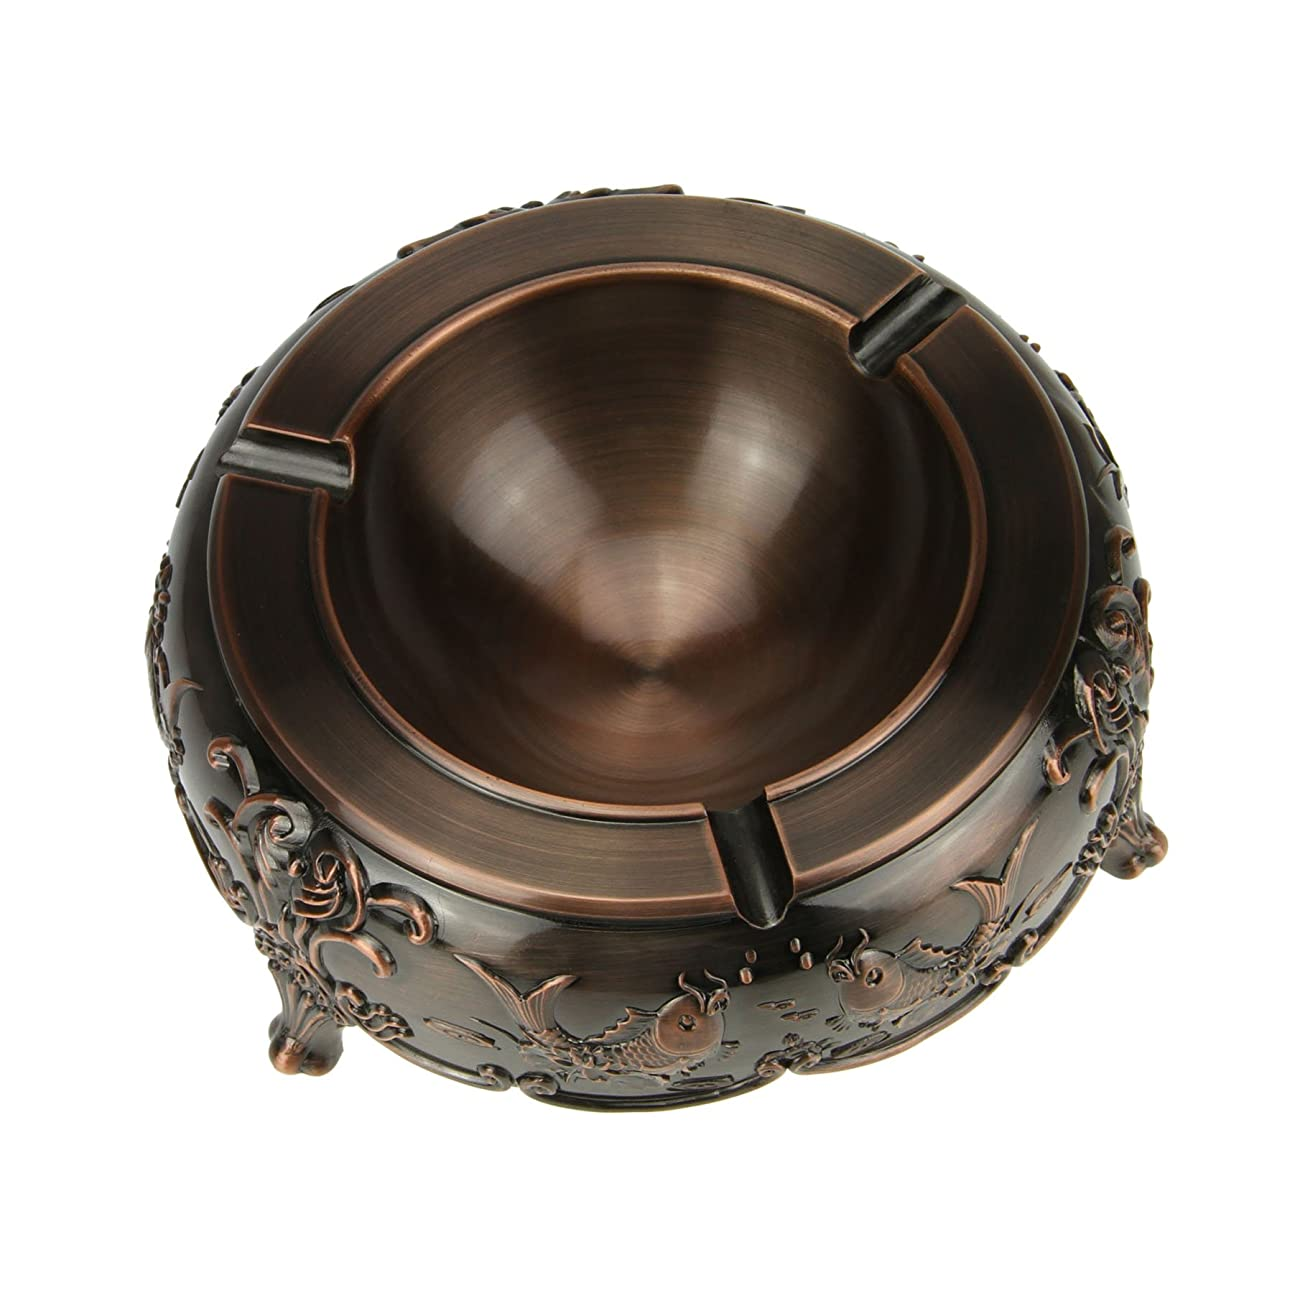 Liying Cigarette Ashtrays for Indoors and Outdoors- Vintage Look, Round, Large, Decorative Bronze Ashtrays with 3 Cigarette Slots, Fish Images Outside. 0